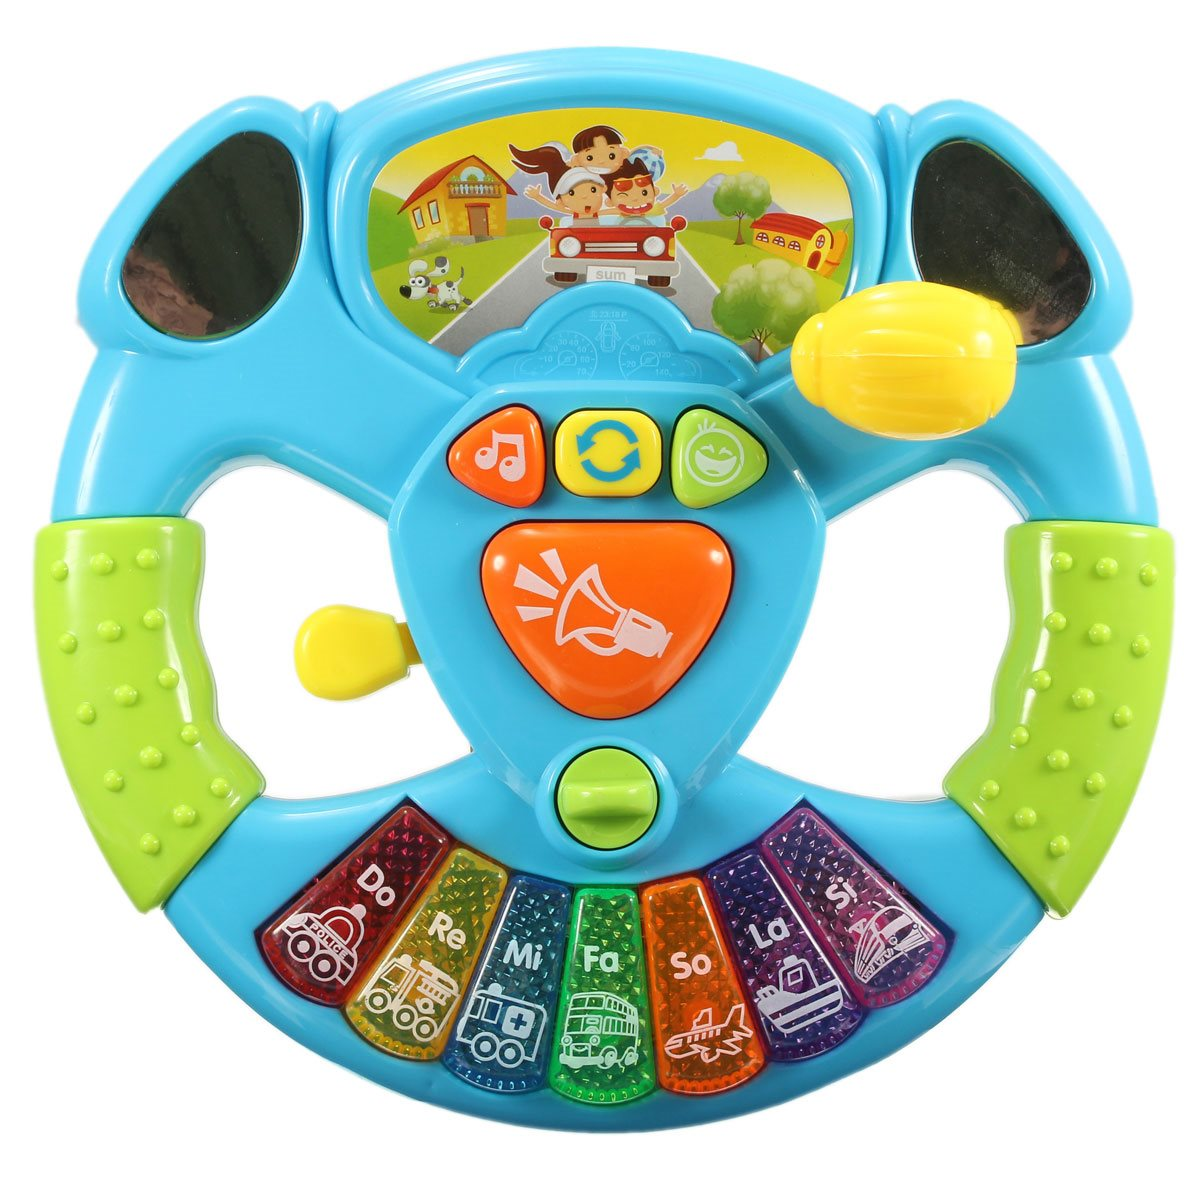 Baby Multifunctional Steering Wheel Toys with Electronic Button Music Lights Transportation Tools Education Intelligence Toys